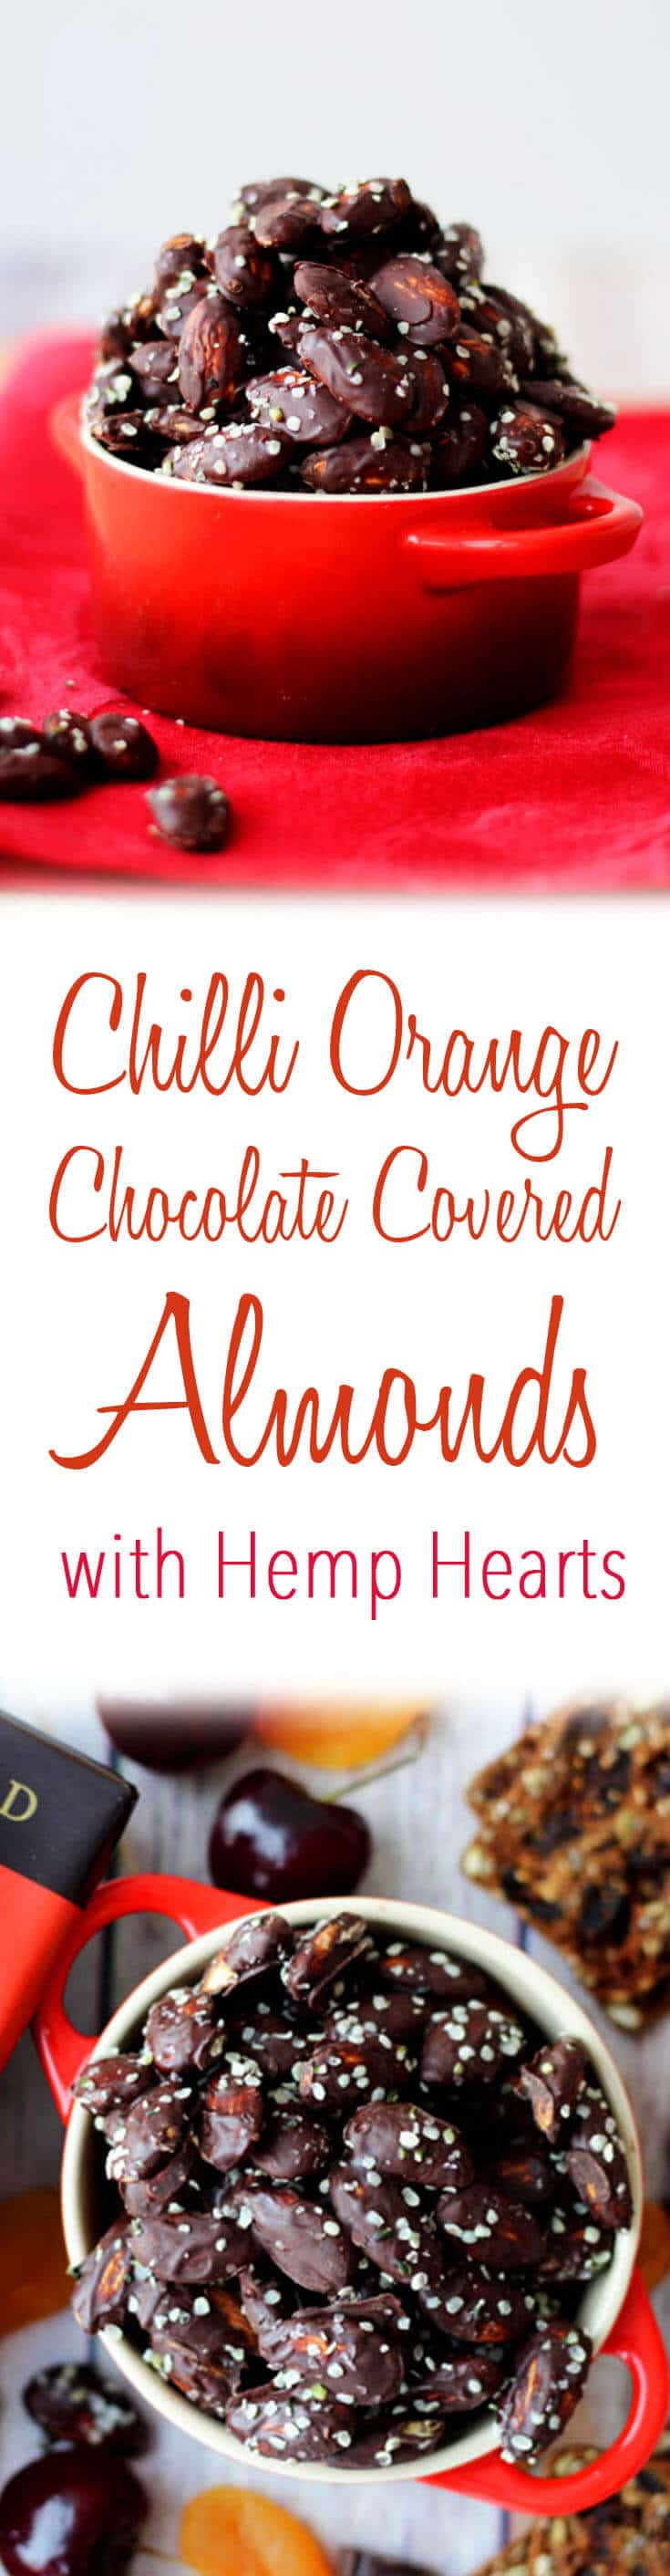 These chilli orange chocolate covered almonds with hemp hearts are a decadent way to spice up your Valentine's Day!